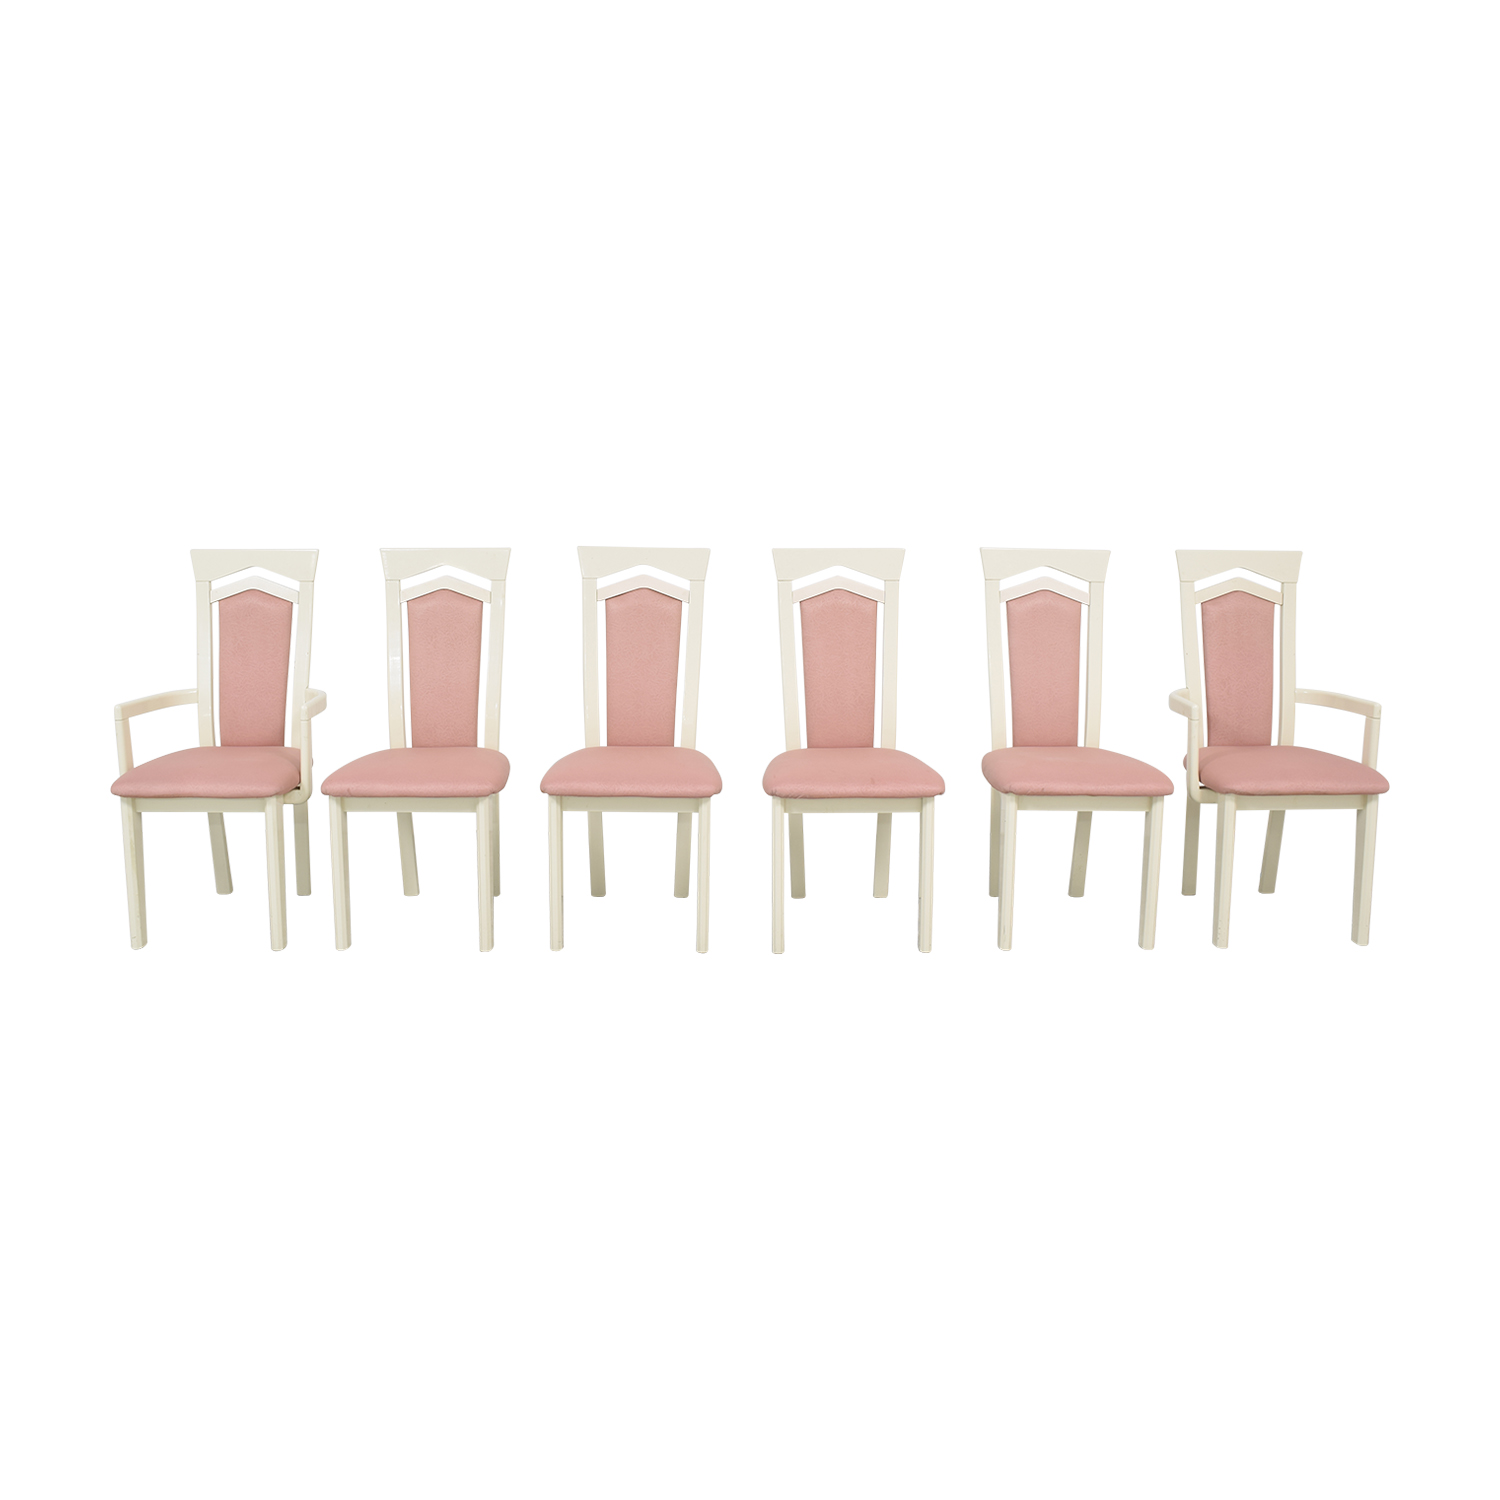 Carrier Furniture Carrier Furniture Upholstered Dining Chairs ct